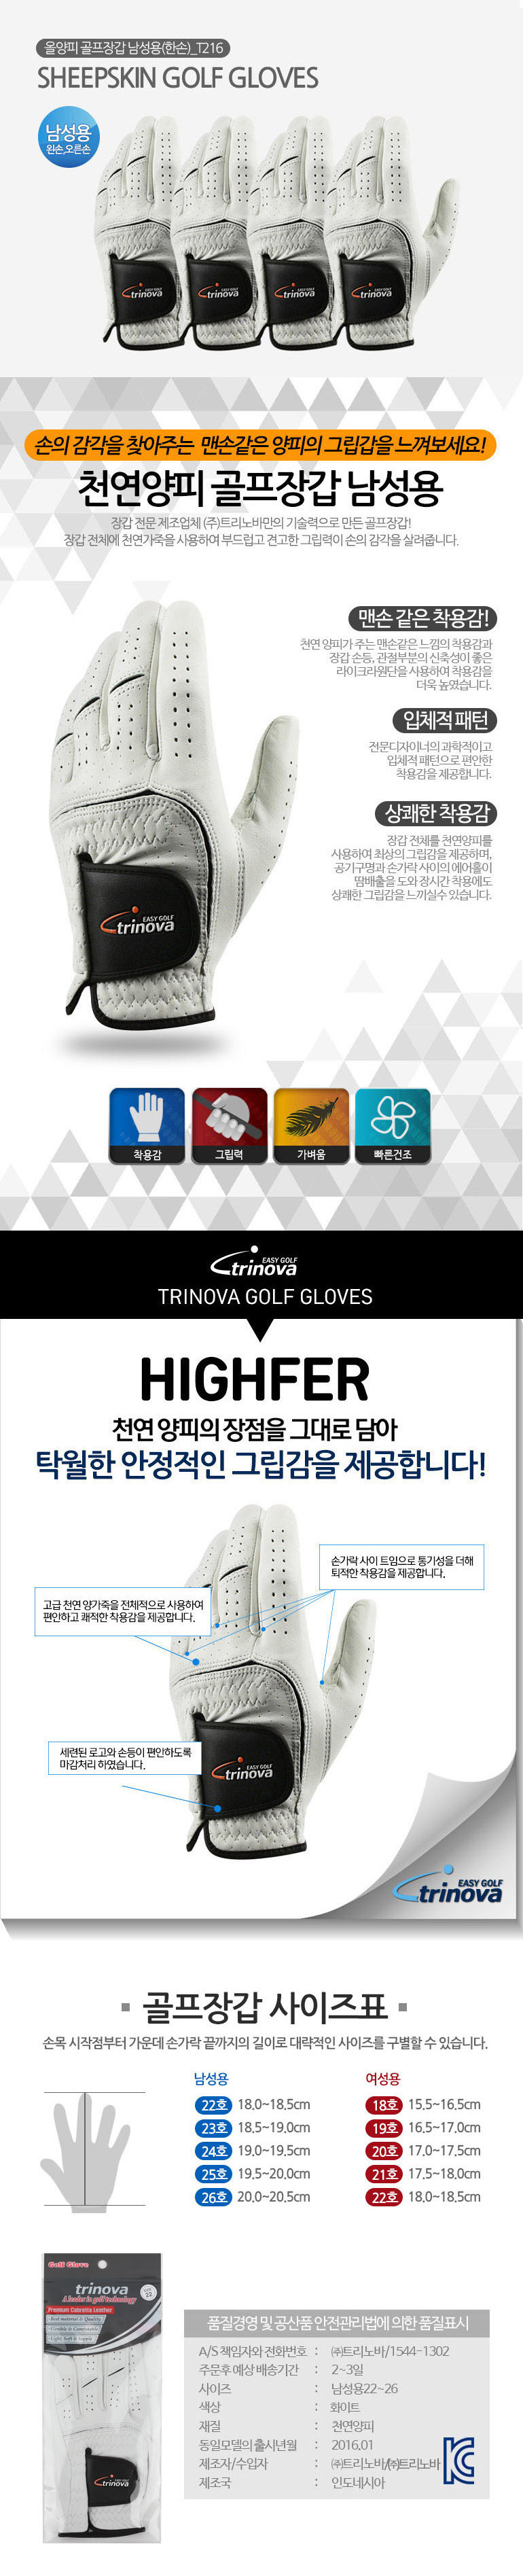 golf_glove_mall_216m_4set.jpg